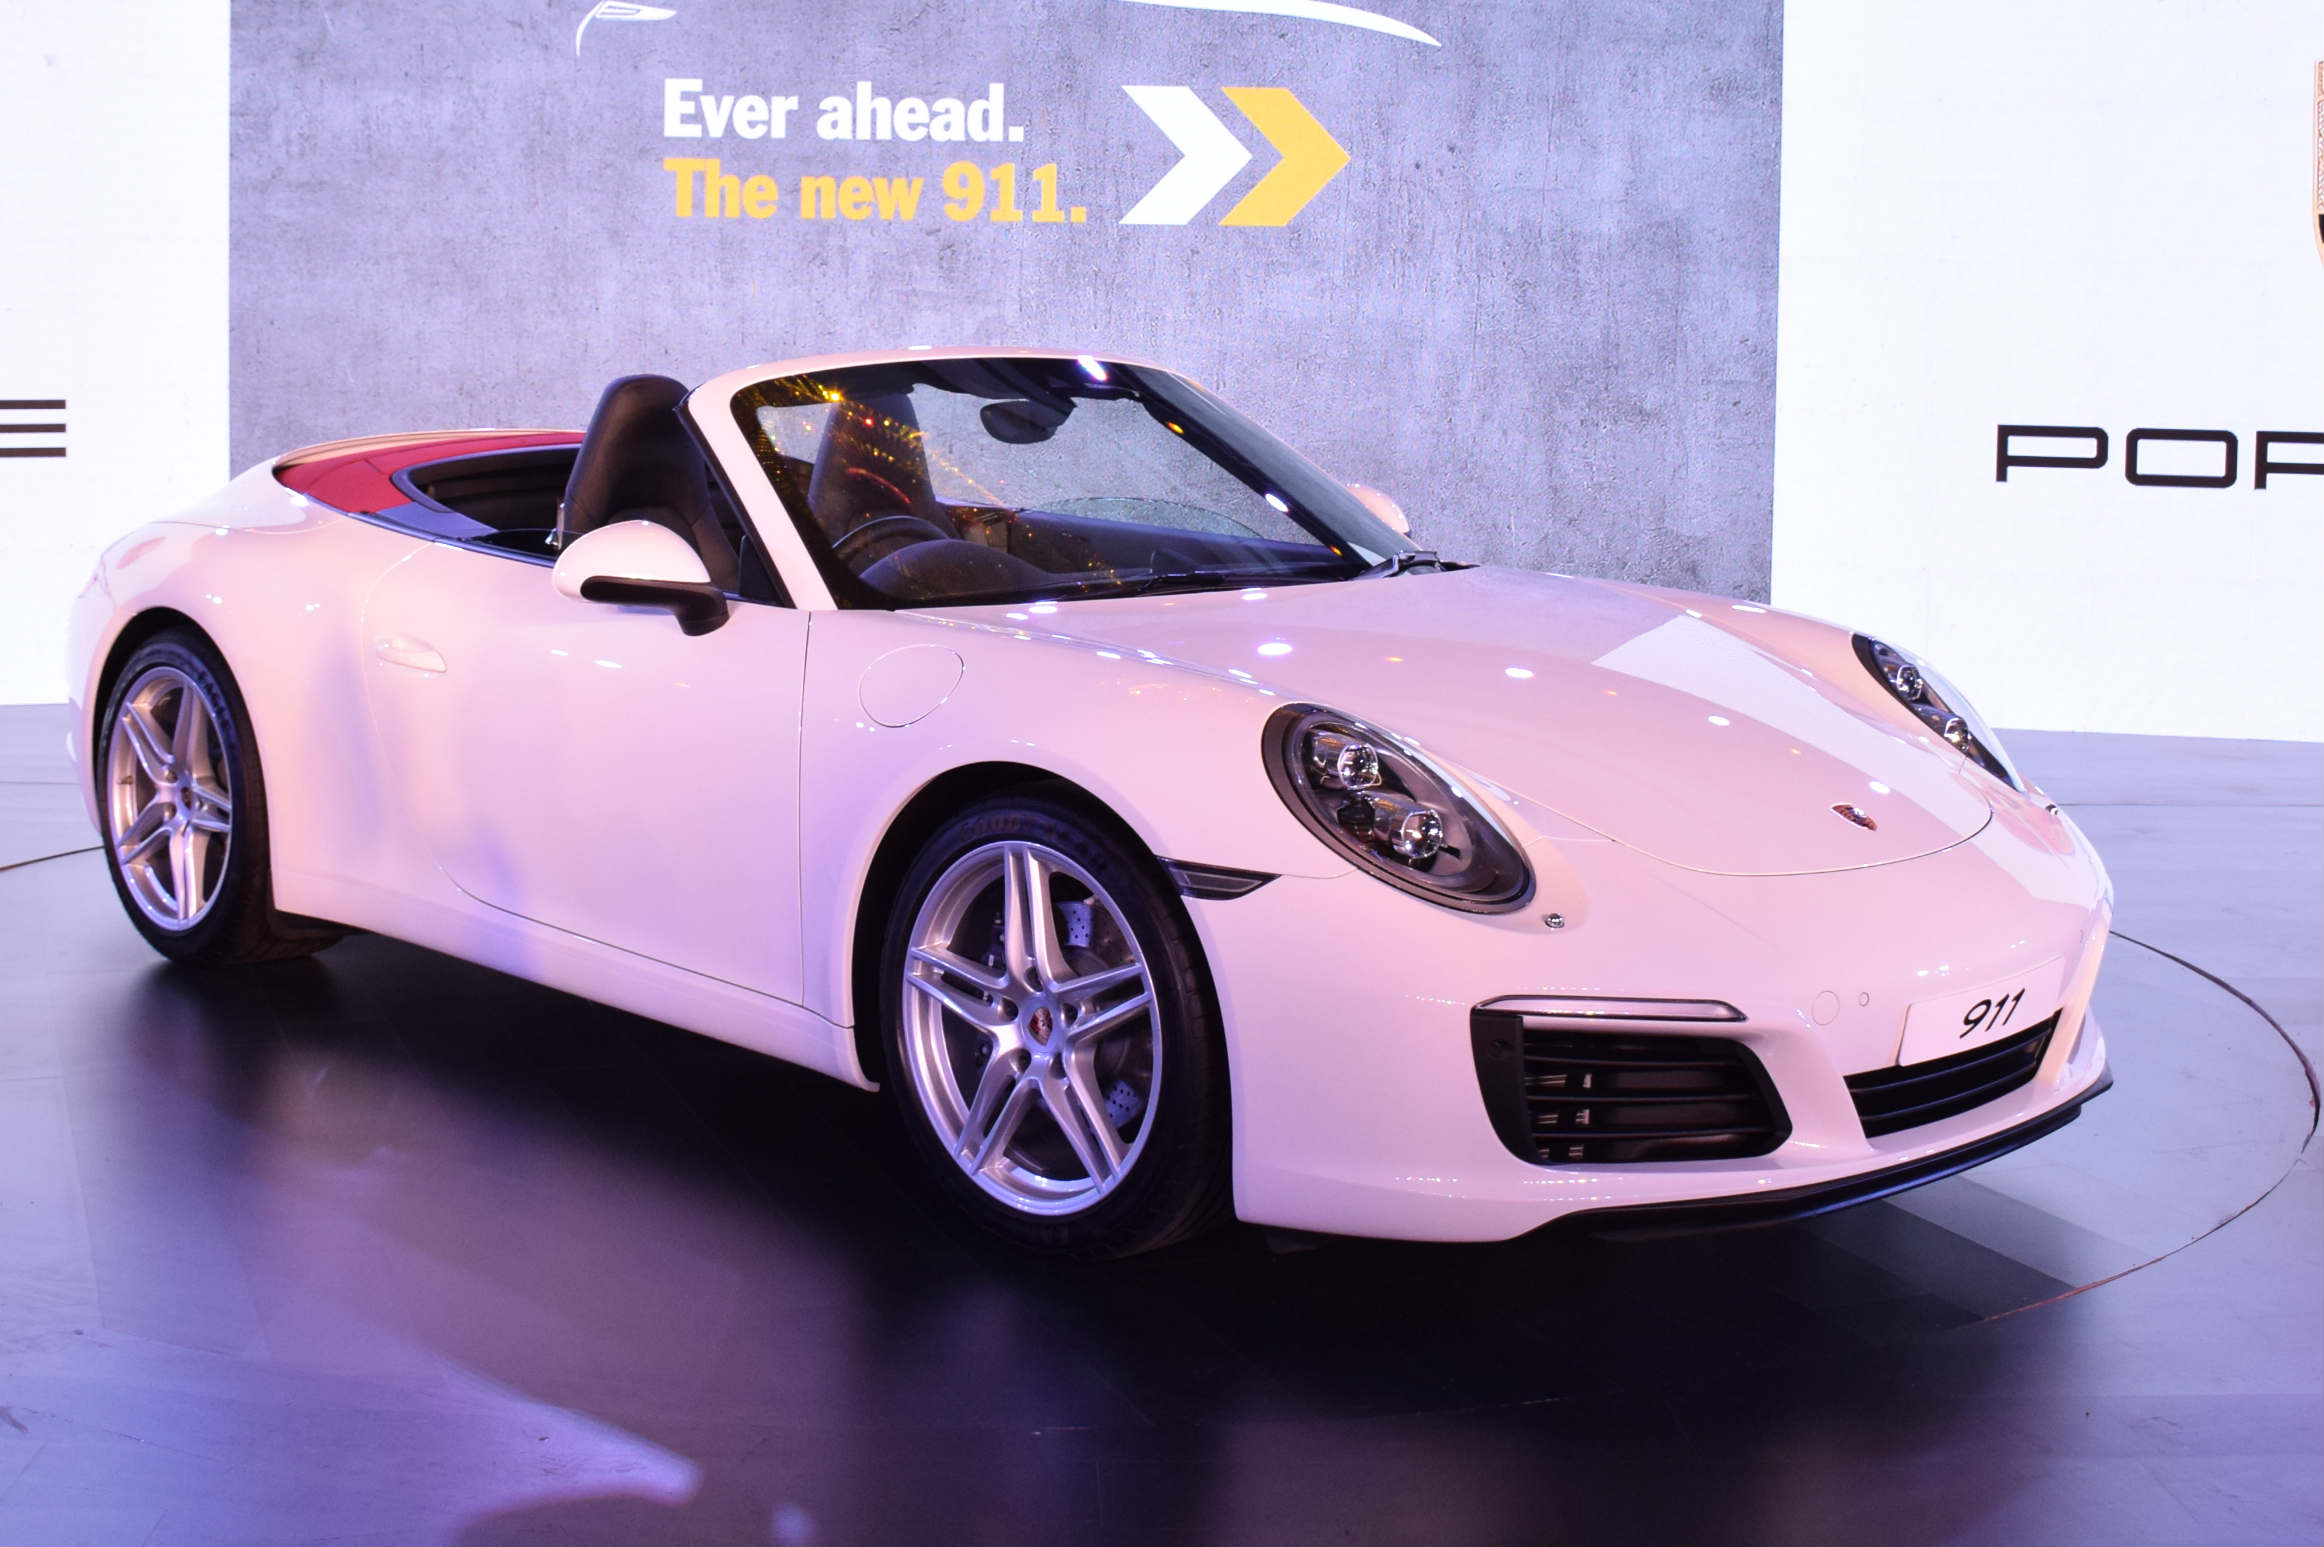 Porsche 911 gt3 rs review 2017 autocar - Updated Porsche 911 Range Launched In India At Rs 1 42 Crore Autocar India